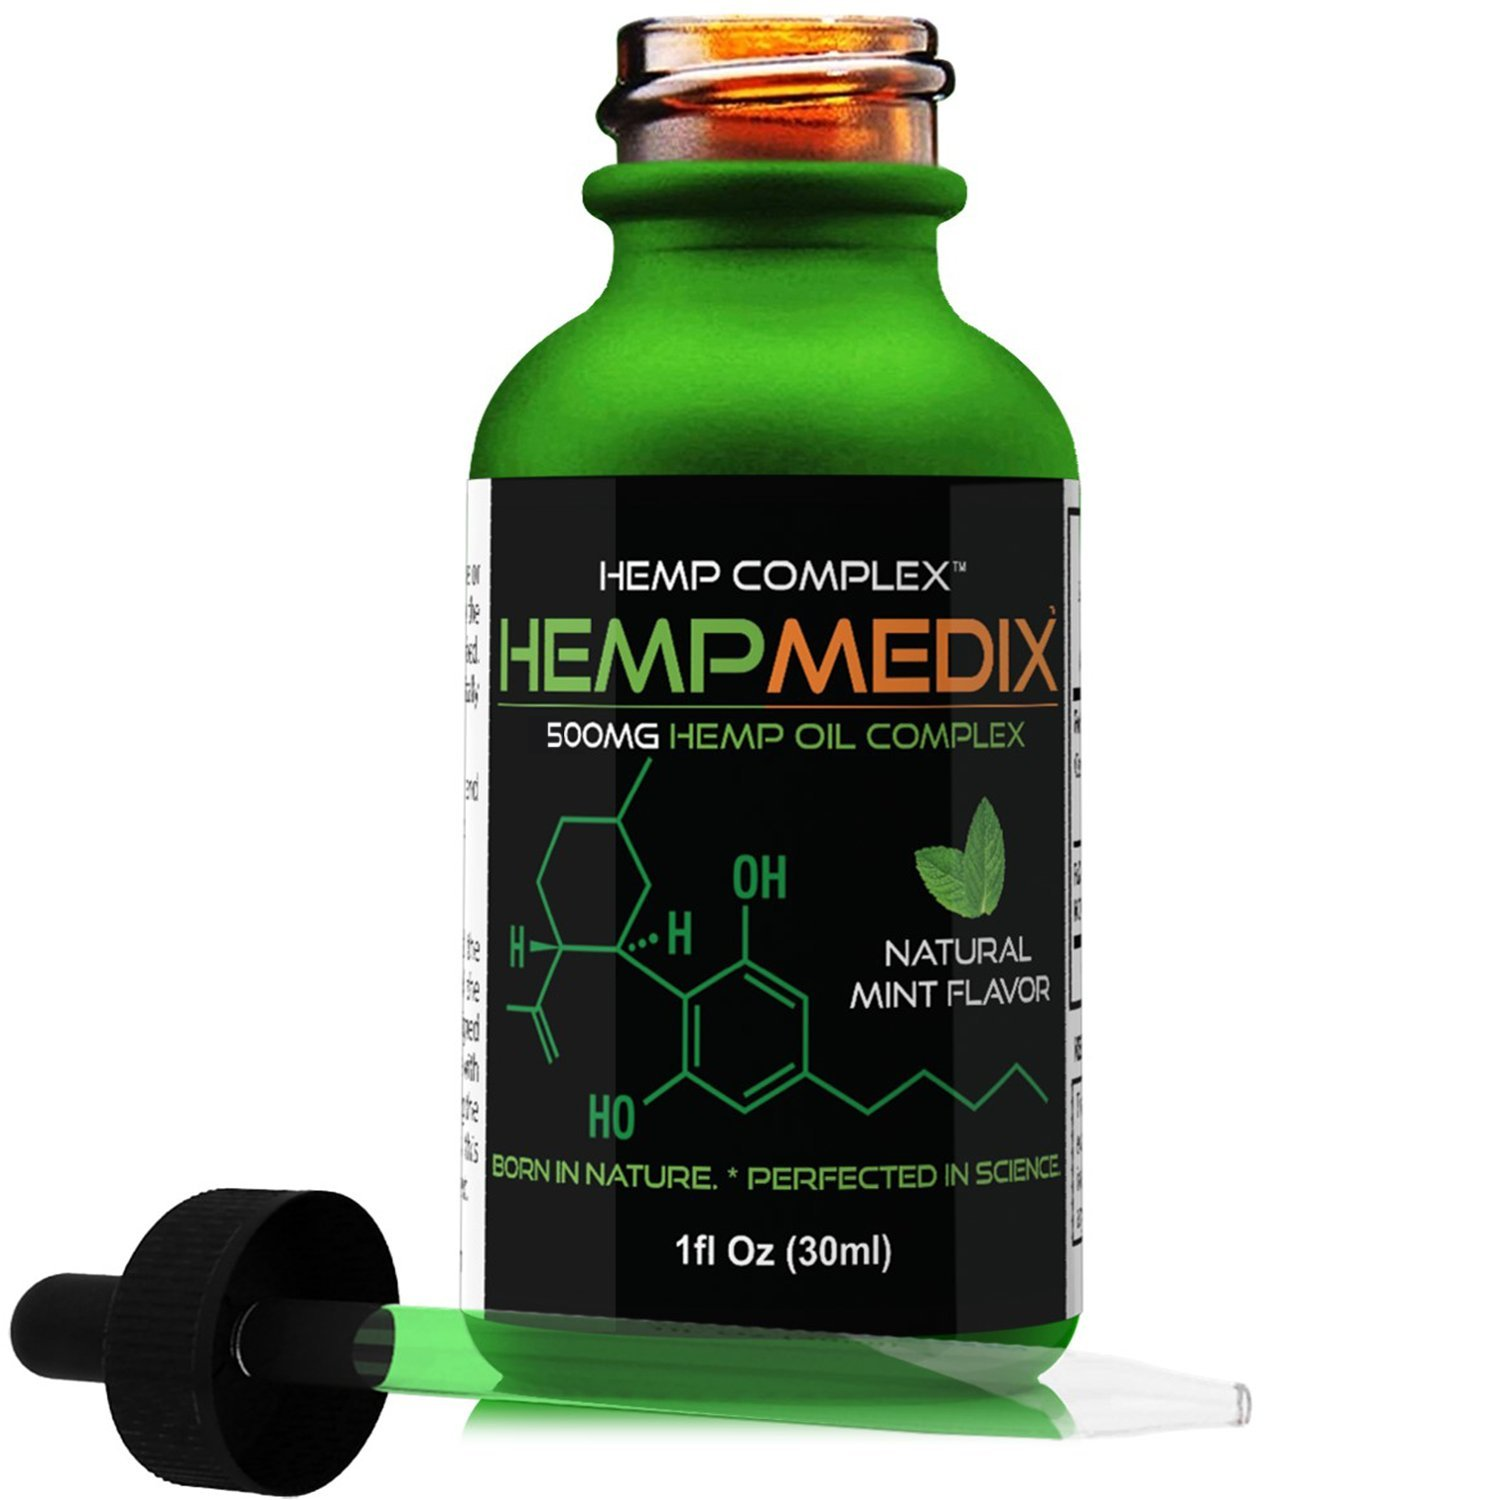 HempMedix Hemp Oil 500mg Full Spectrum Therapeutic Hemp Oil Extract - Pain Relief